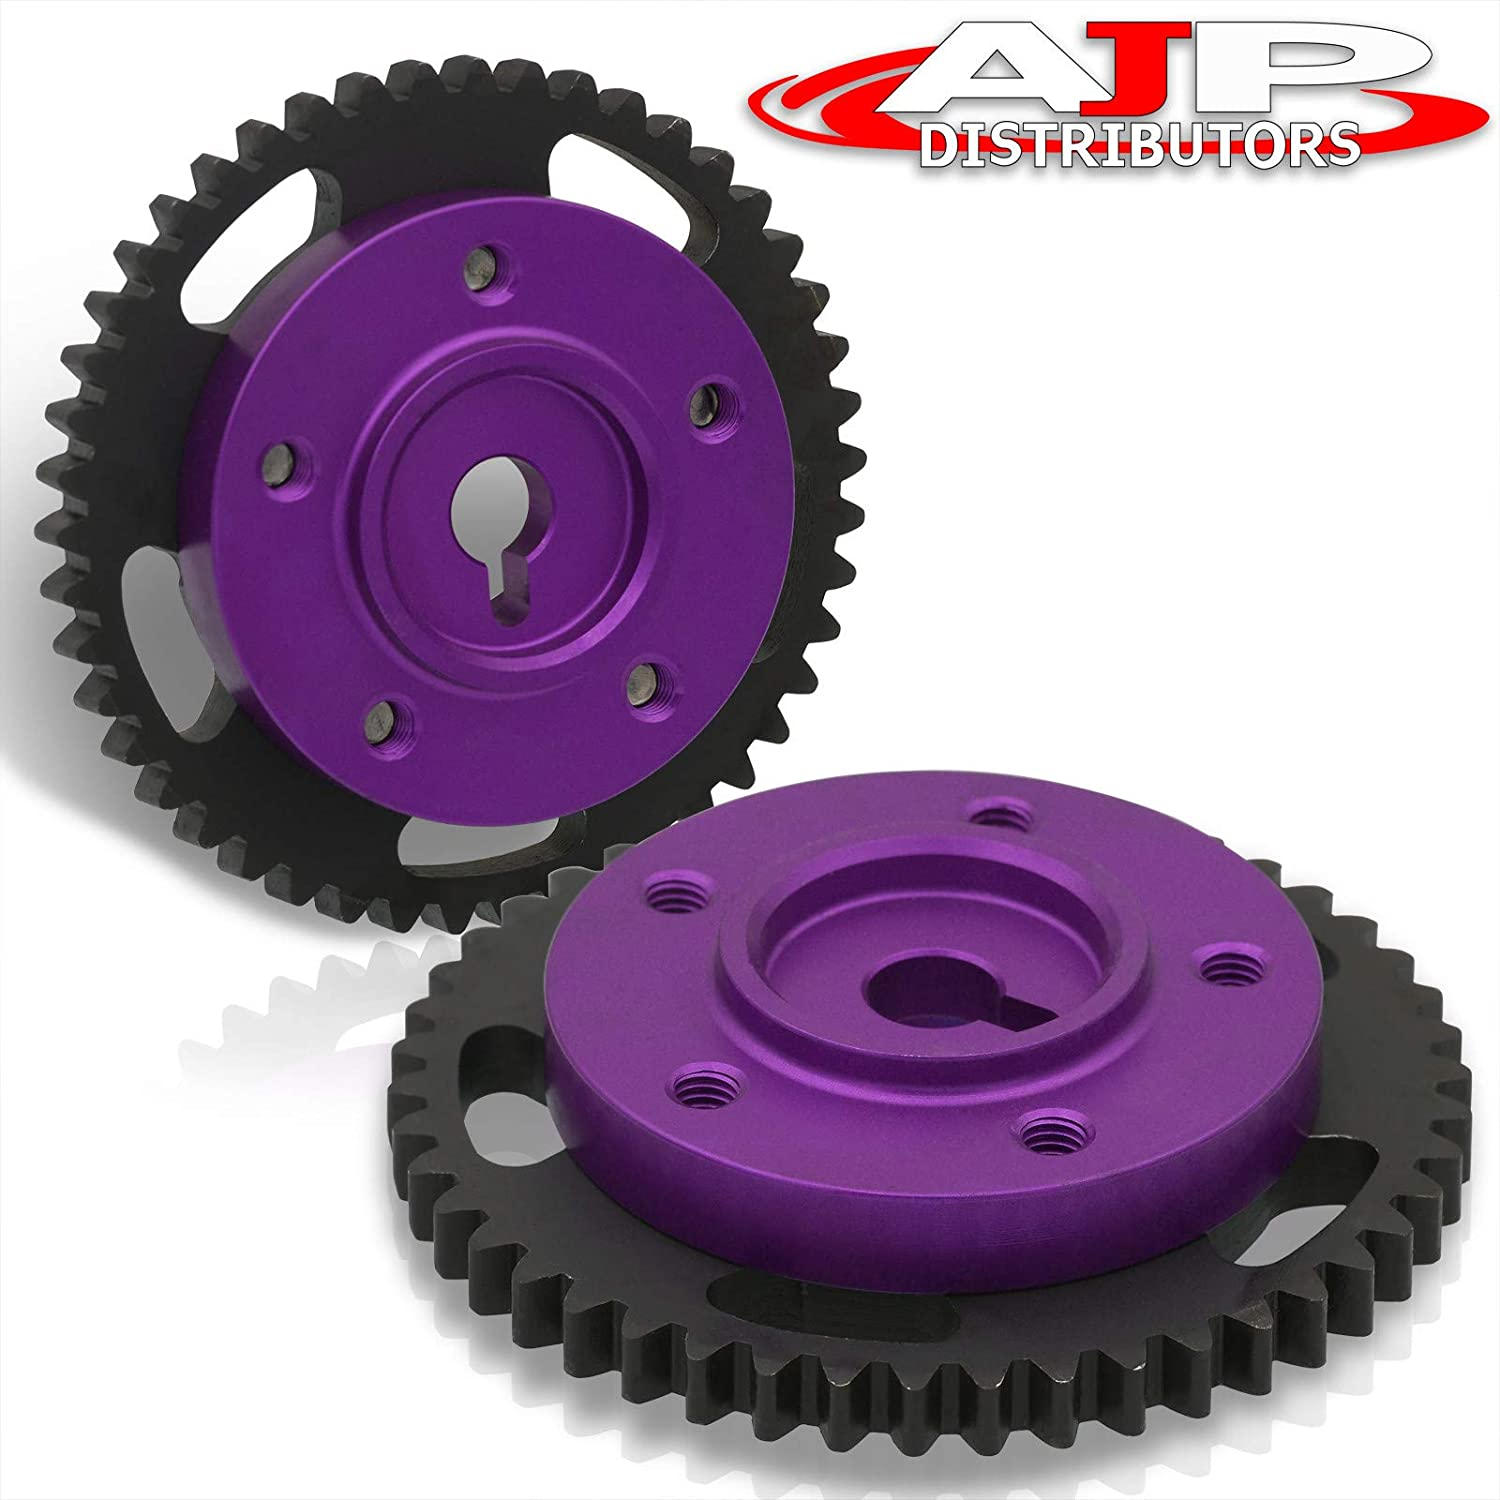 Mail order cheap AJP Distributors Adjustable Cam Fresno Mall Gears Kit Timing Pur Gear Pulley